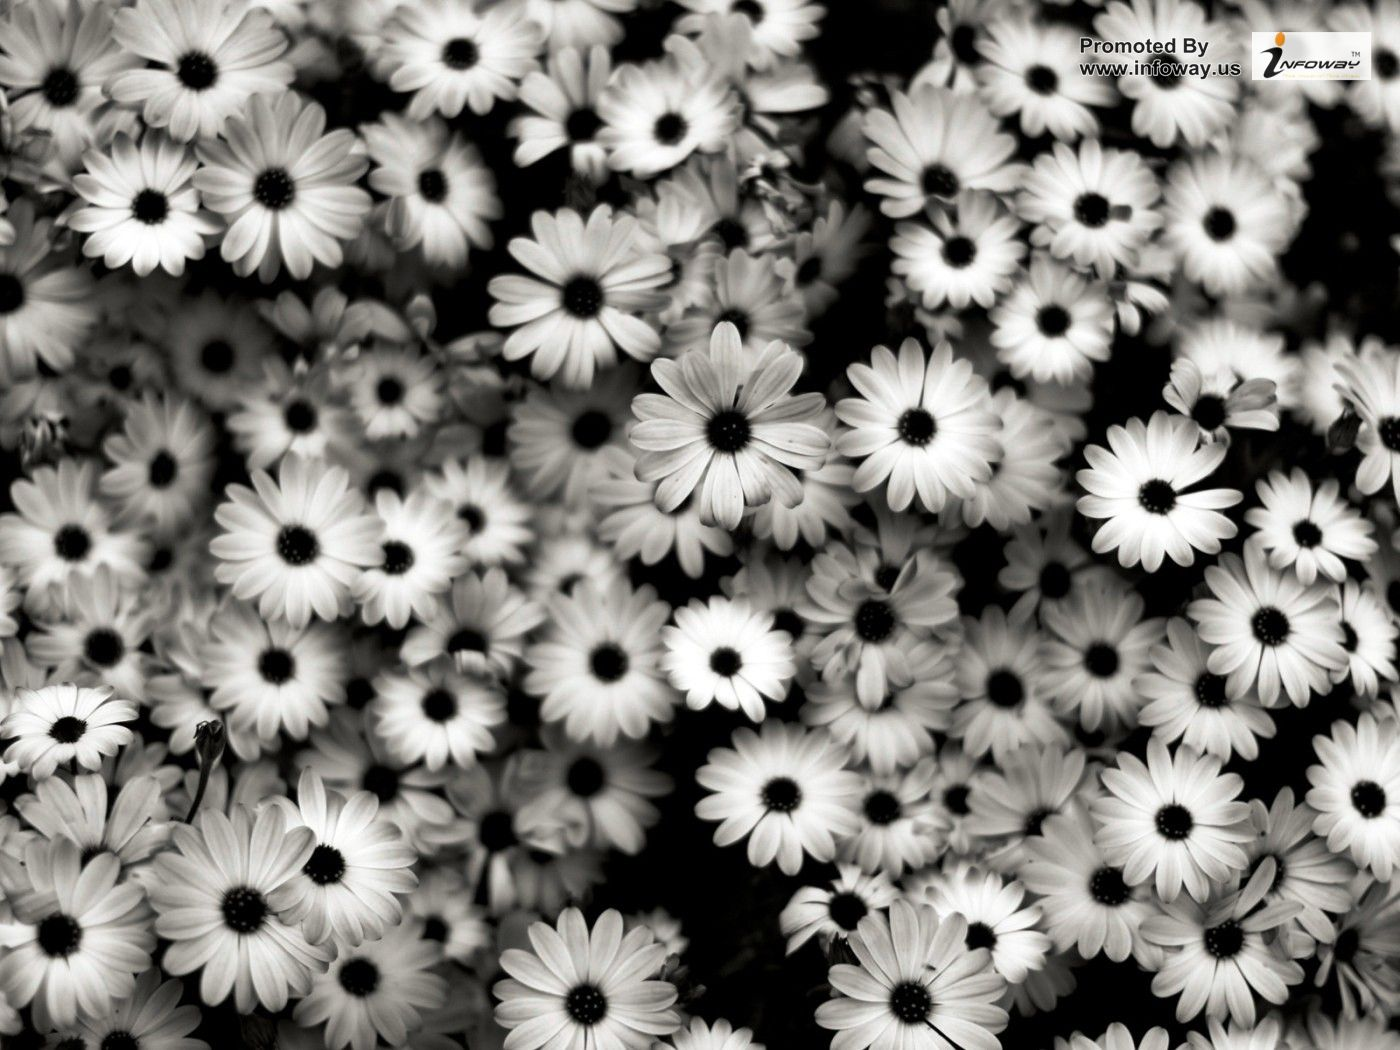 Daisy Background Tumblr Posted By Michelle Simpson